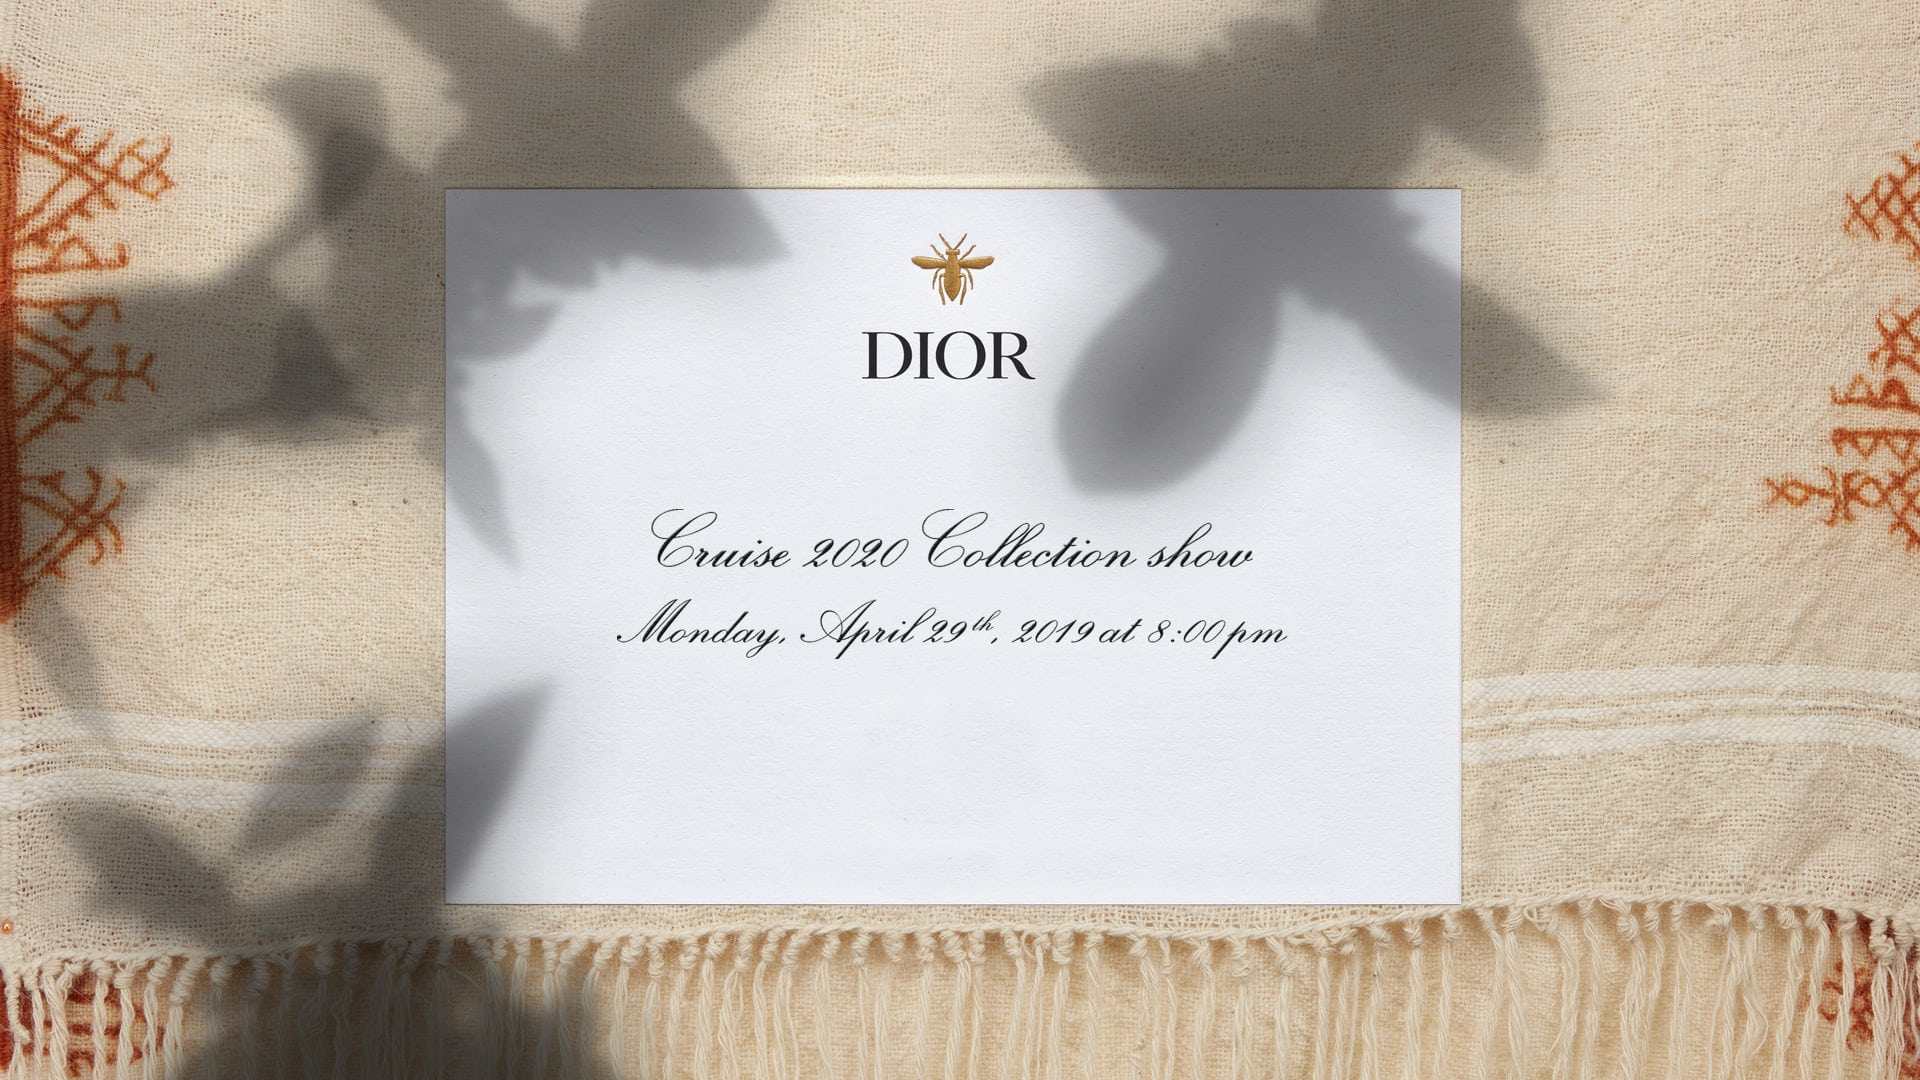 69704299 Watch: Dior Cruise 2020 fashion show, live from Marrakech